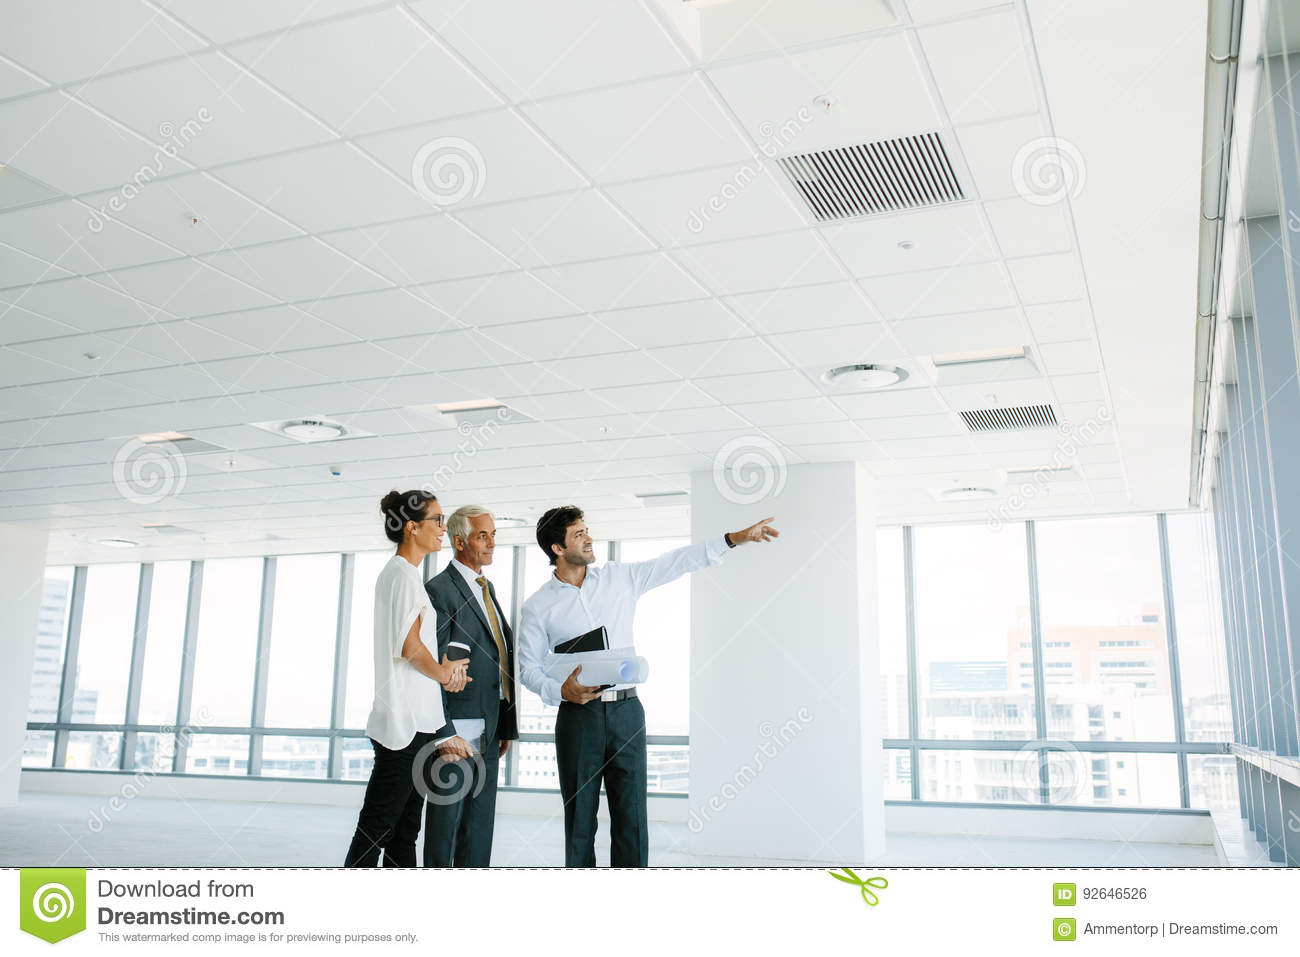 Real estate broker showing office space to clients